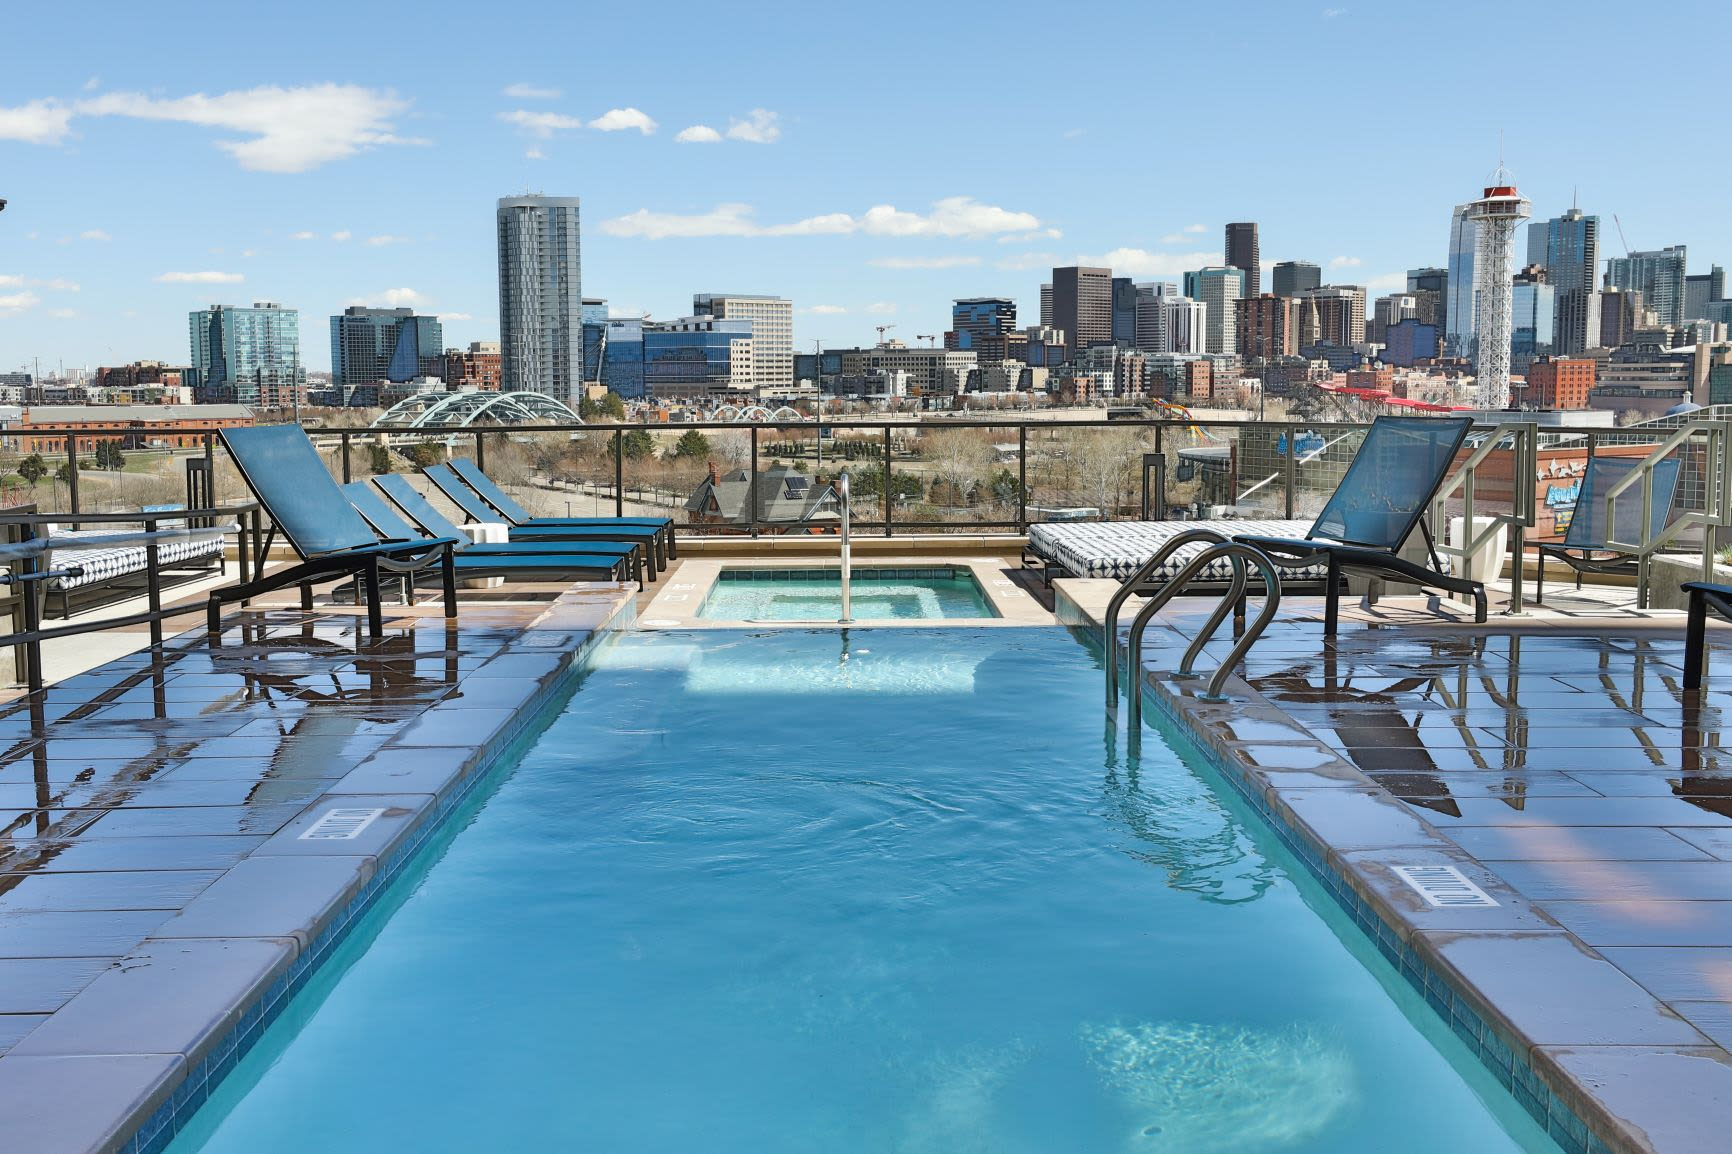 Rooftop pool at The Alcott in Downtown Denver, Colorado